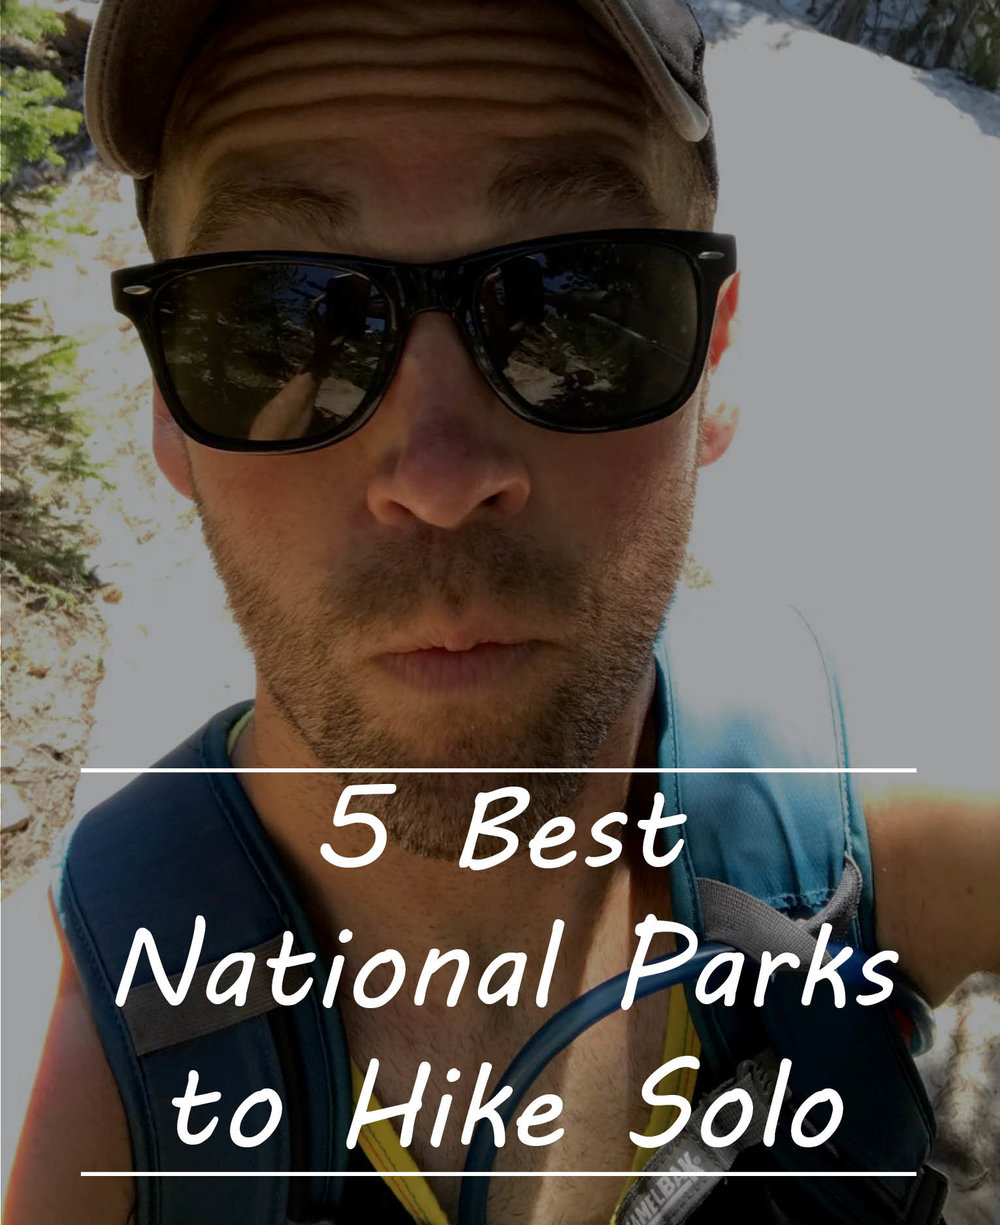 National Parks_Solo.jpg